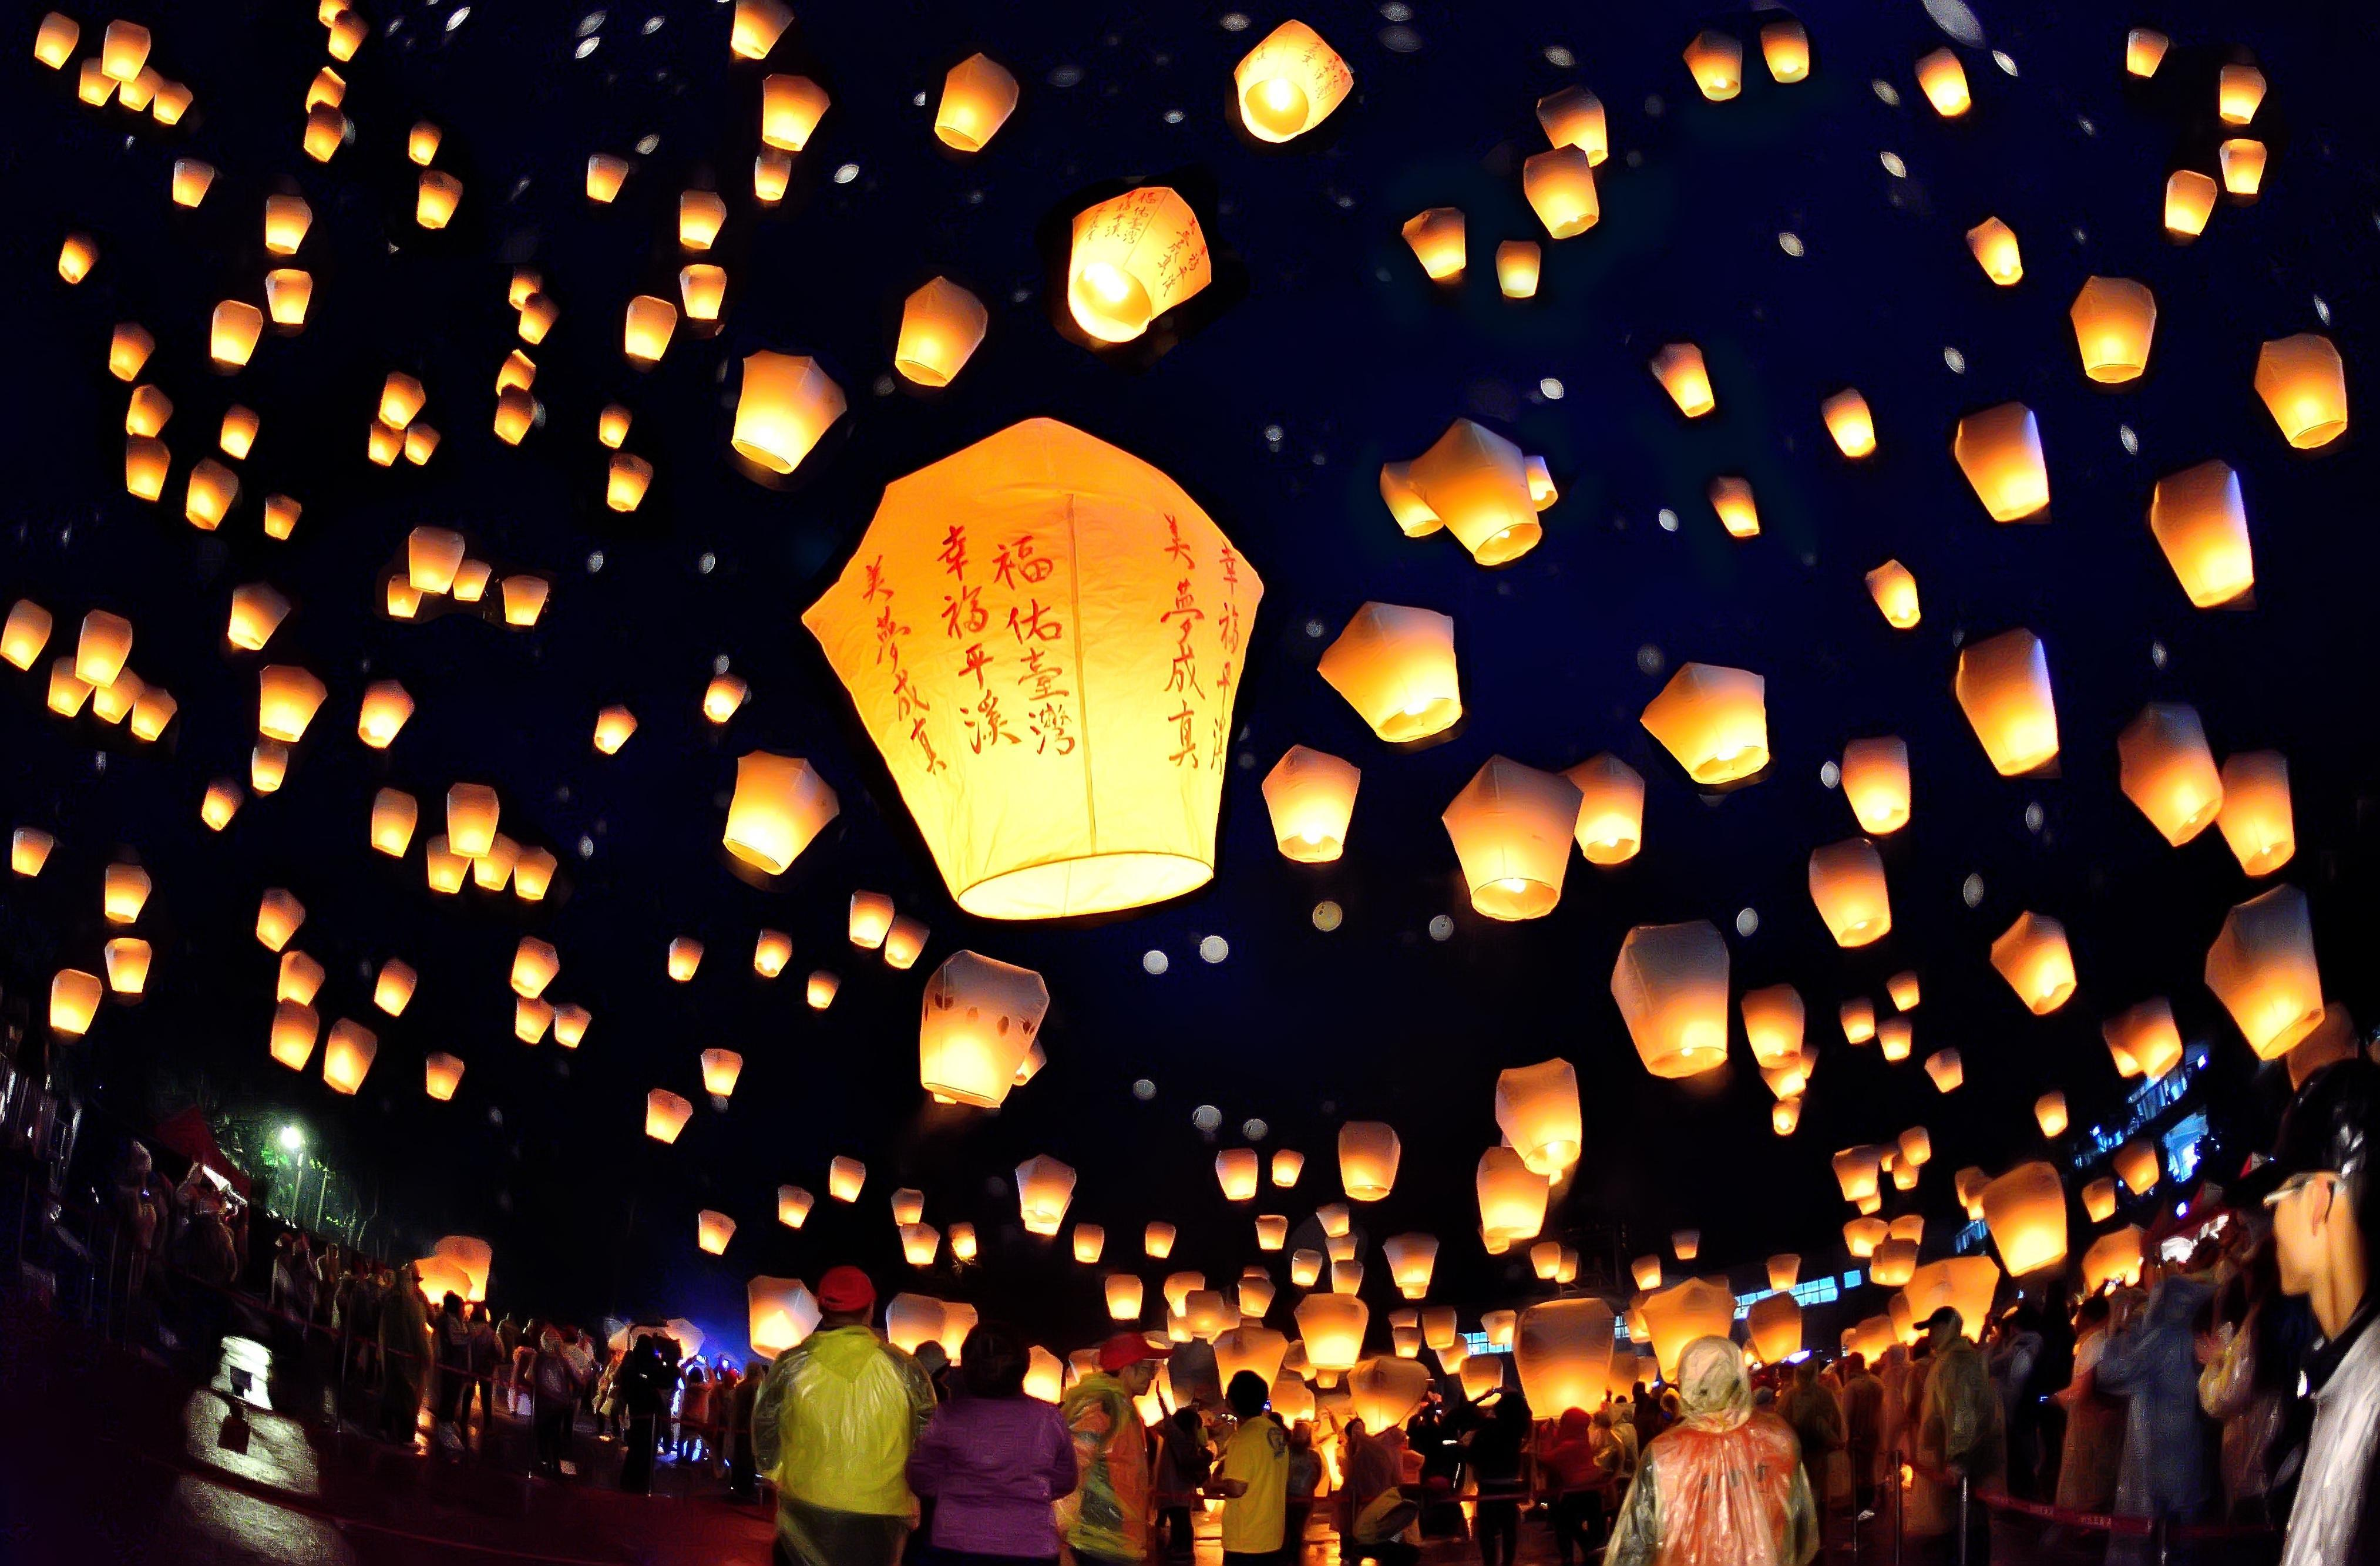 At Pingxi Lantern Festival, wishes light up the Taiwan sky